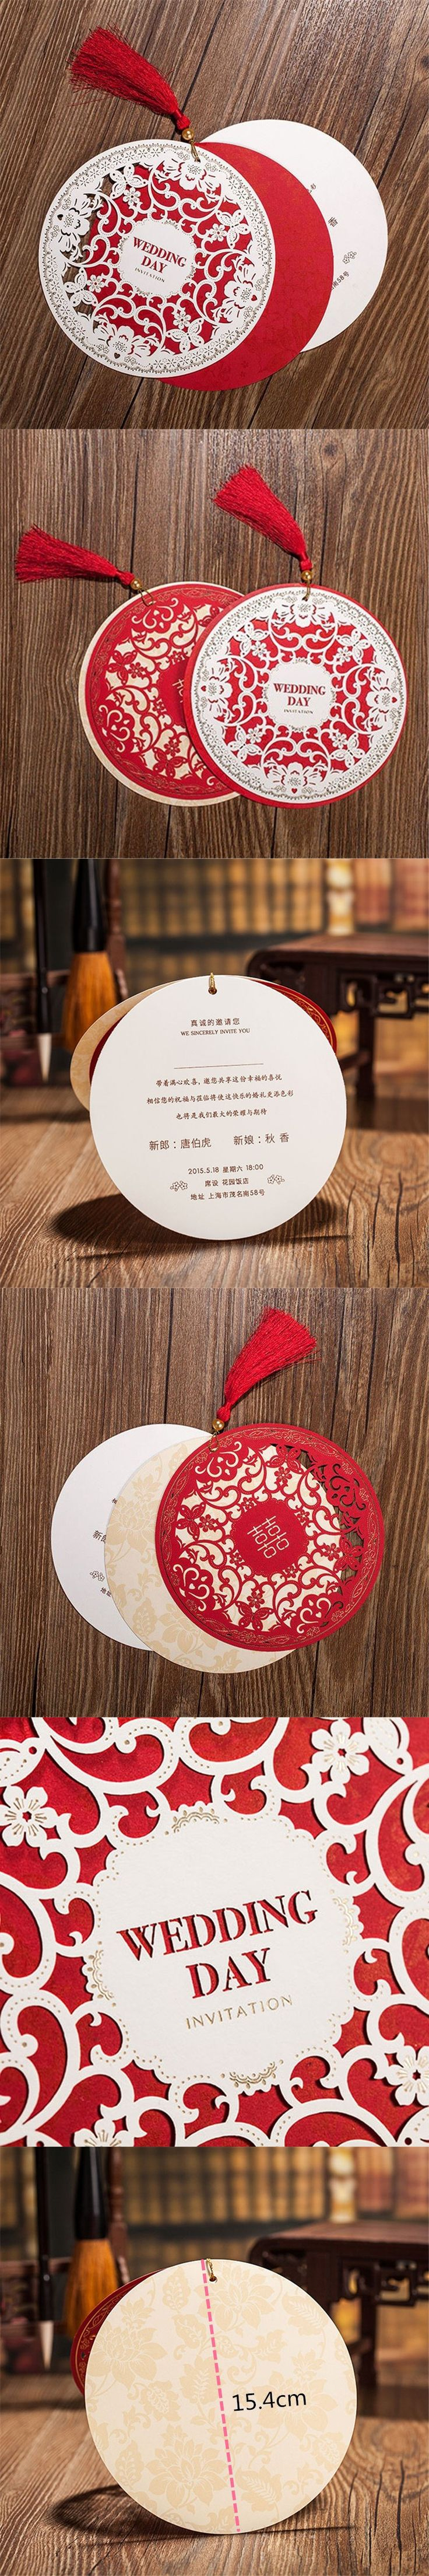 Chinese Style Wedding Invitations Card 15.4cm Diameter Floral Design Envelope Pure Love Red White Elegant Round Party Supplies $3.92